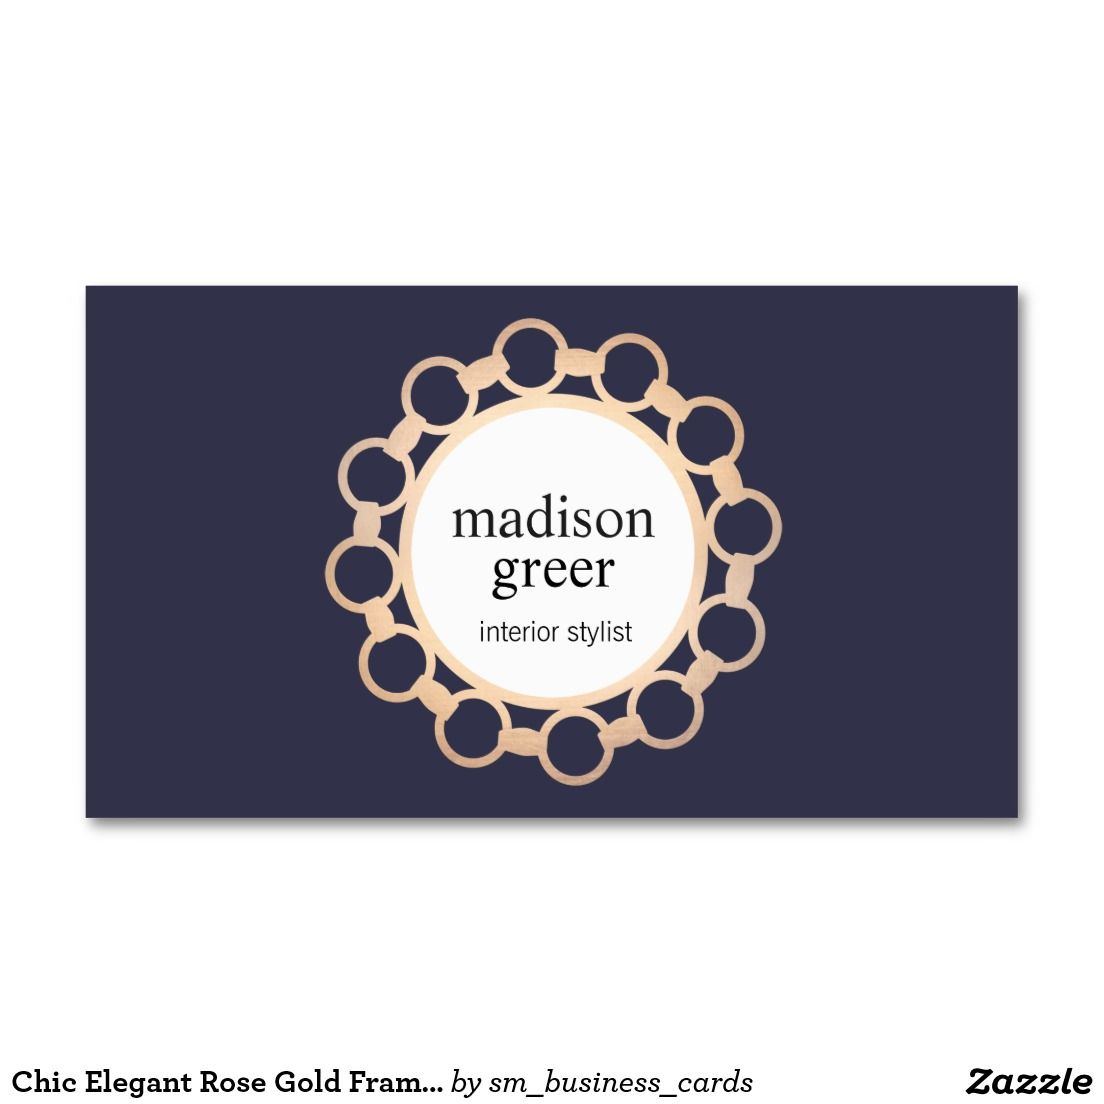 Chic elegant rose gold frame navy blue business card business chic elegant rose gold frame navy blue business card chic stylish business card perfect for jewelry designers interior designers home decor boutiques colourmoves